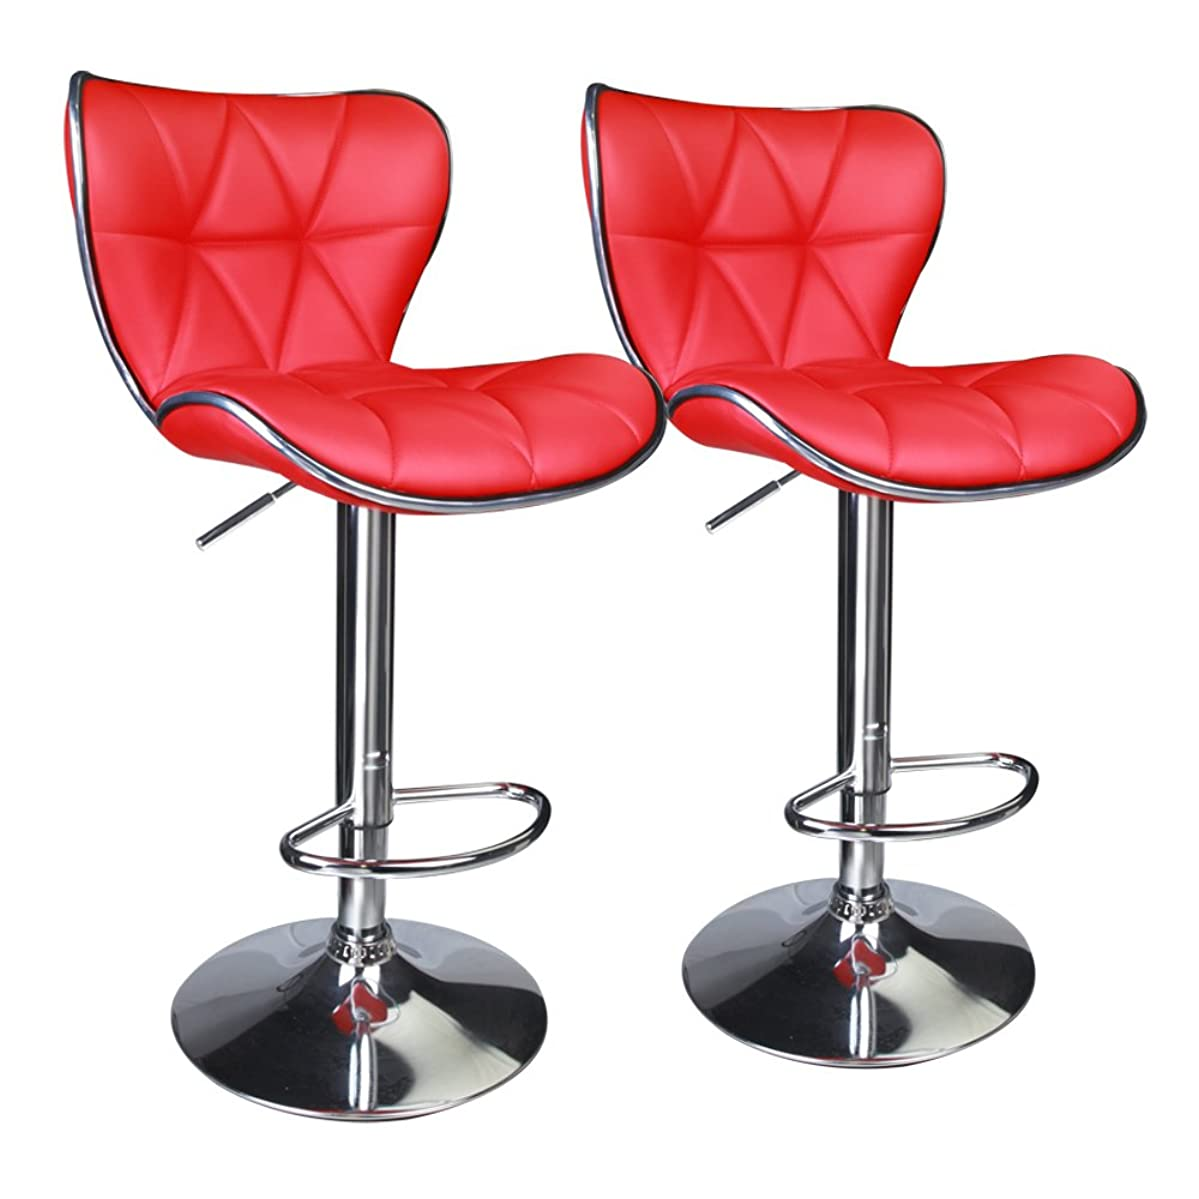 Leopard Shell Back Adjustable Swivel Bar Stools, PU Leather Padded with Back, Set of 2 (Red)